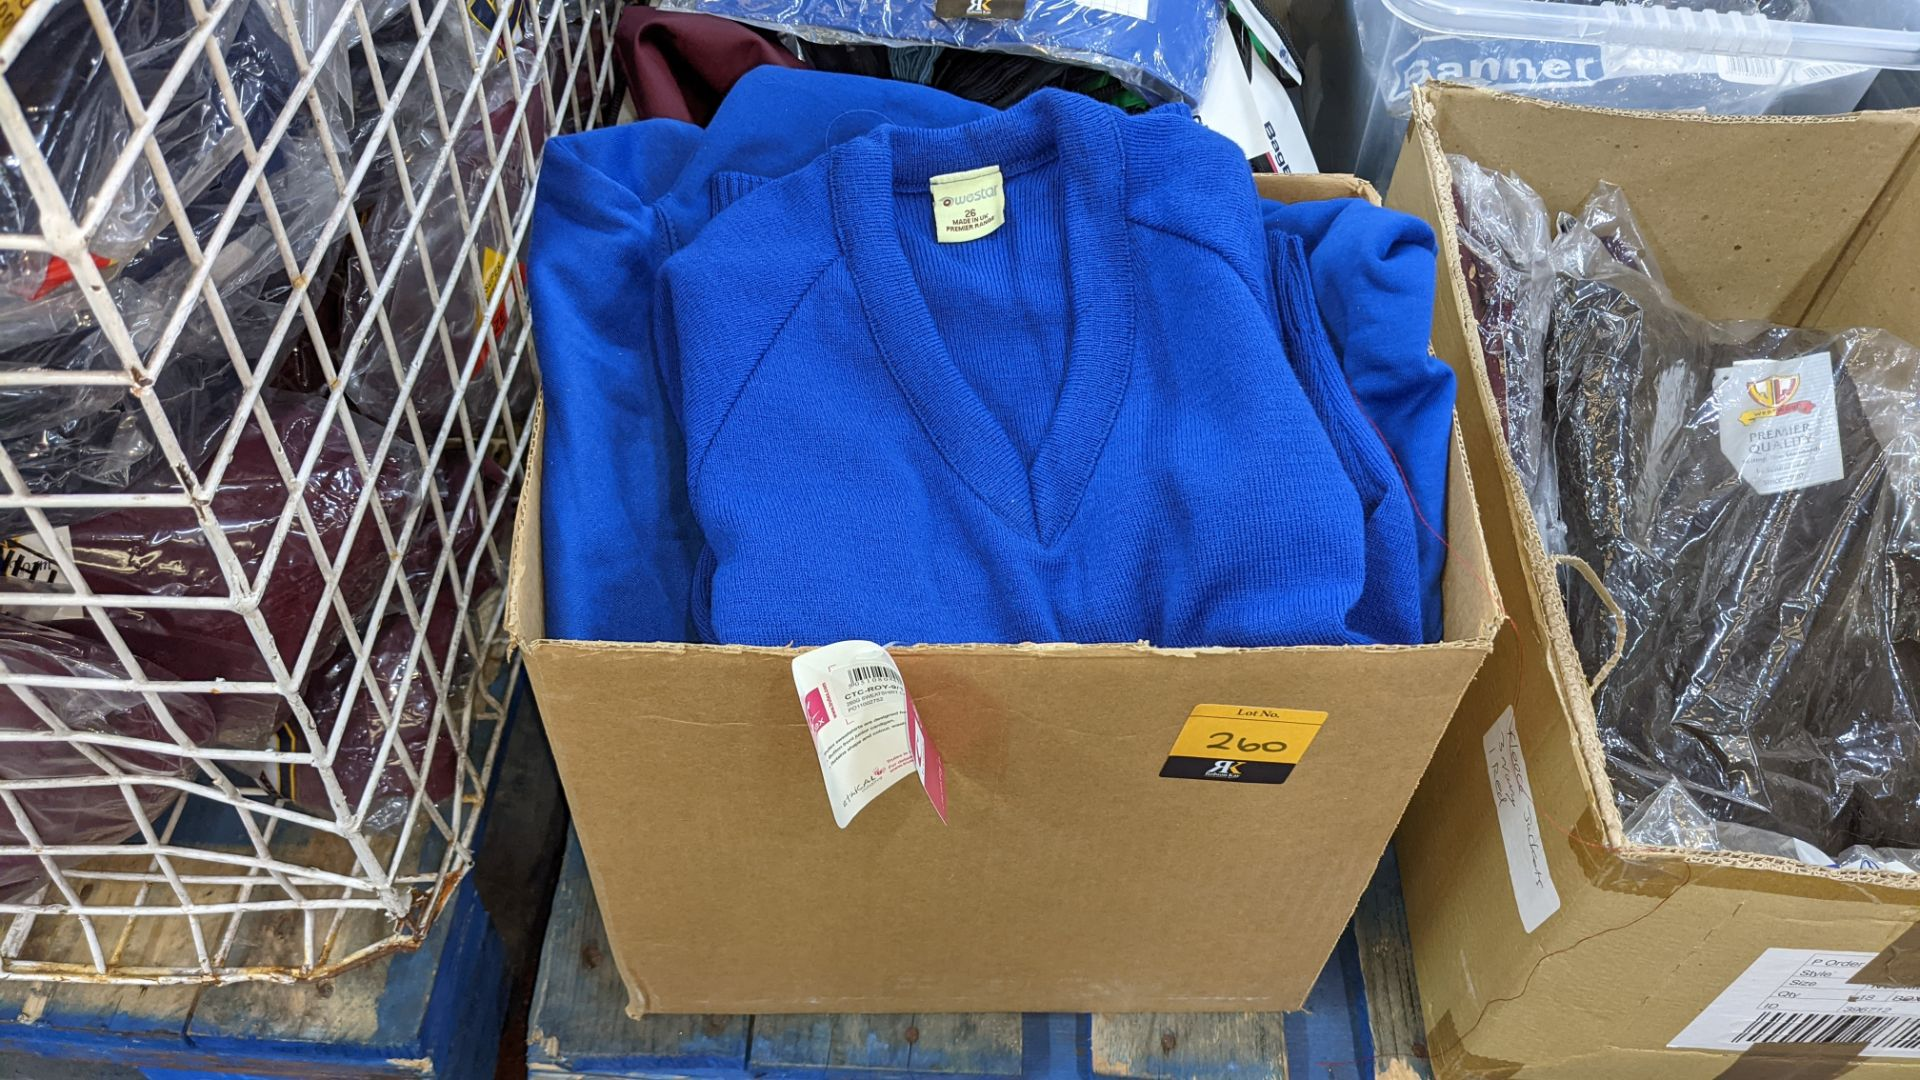 Box of blue V neck children's sweatshirts & button up tops - Image 2 of 4